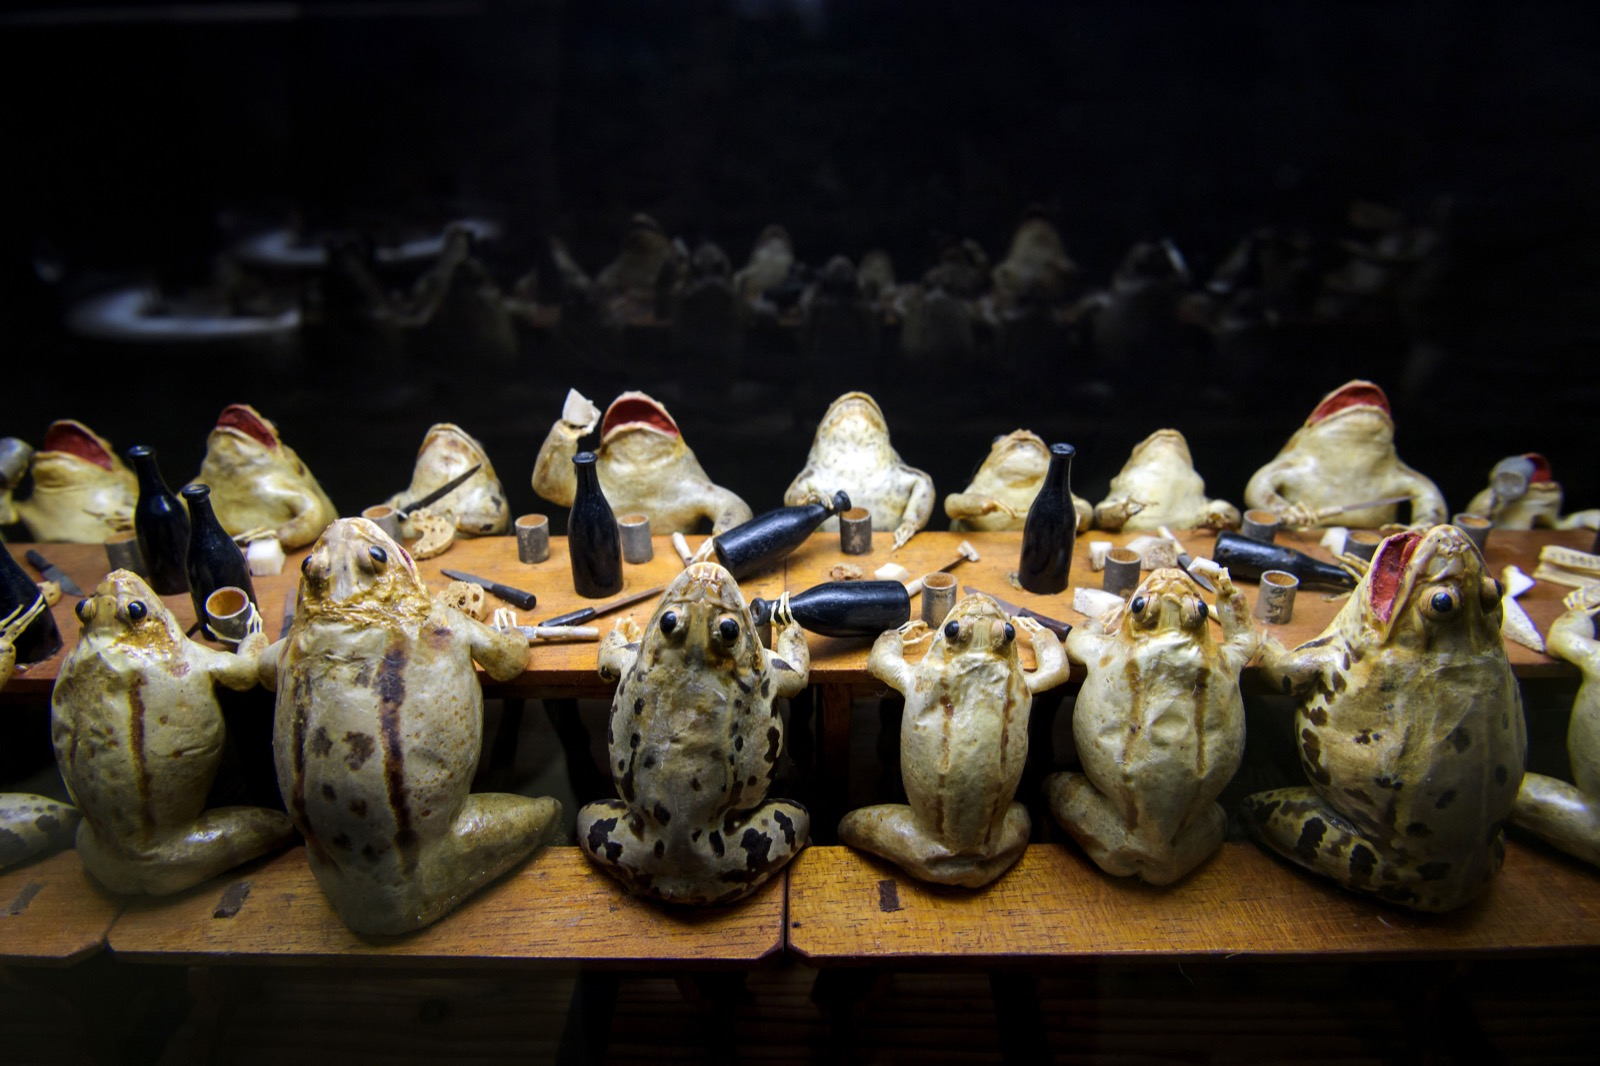 Frogs-attending-a-banquet-at-the-Frog-Museum-in-Estavayer-le-Lac-western-Switzerland-FABRICE-COFFRINI-AFP-Getty-Images-thechicflaneuse